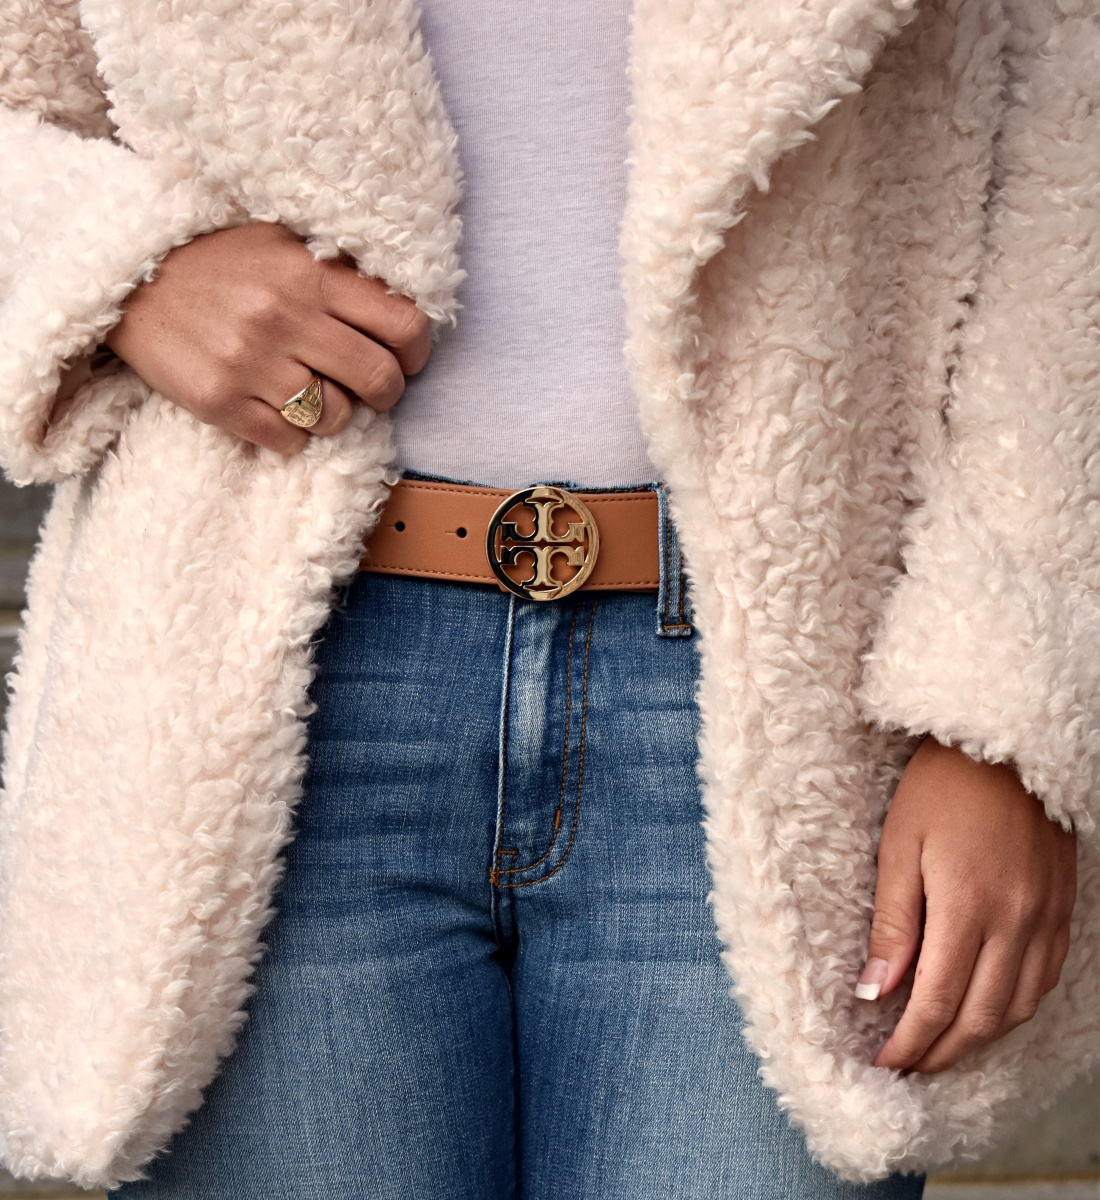 Blush Fur Coat + Fringe Jeans